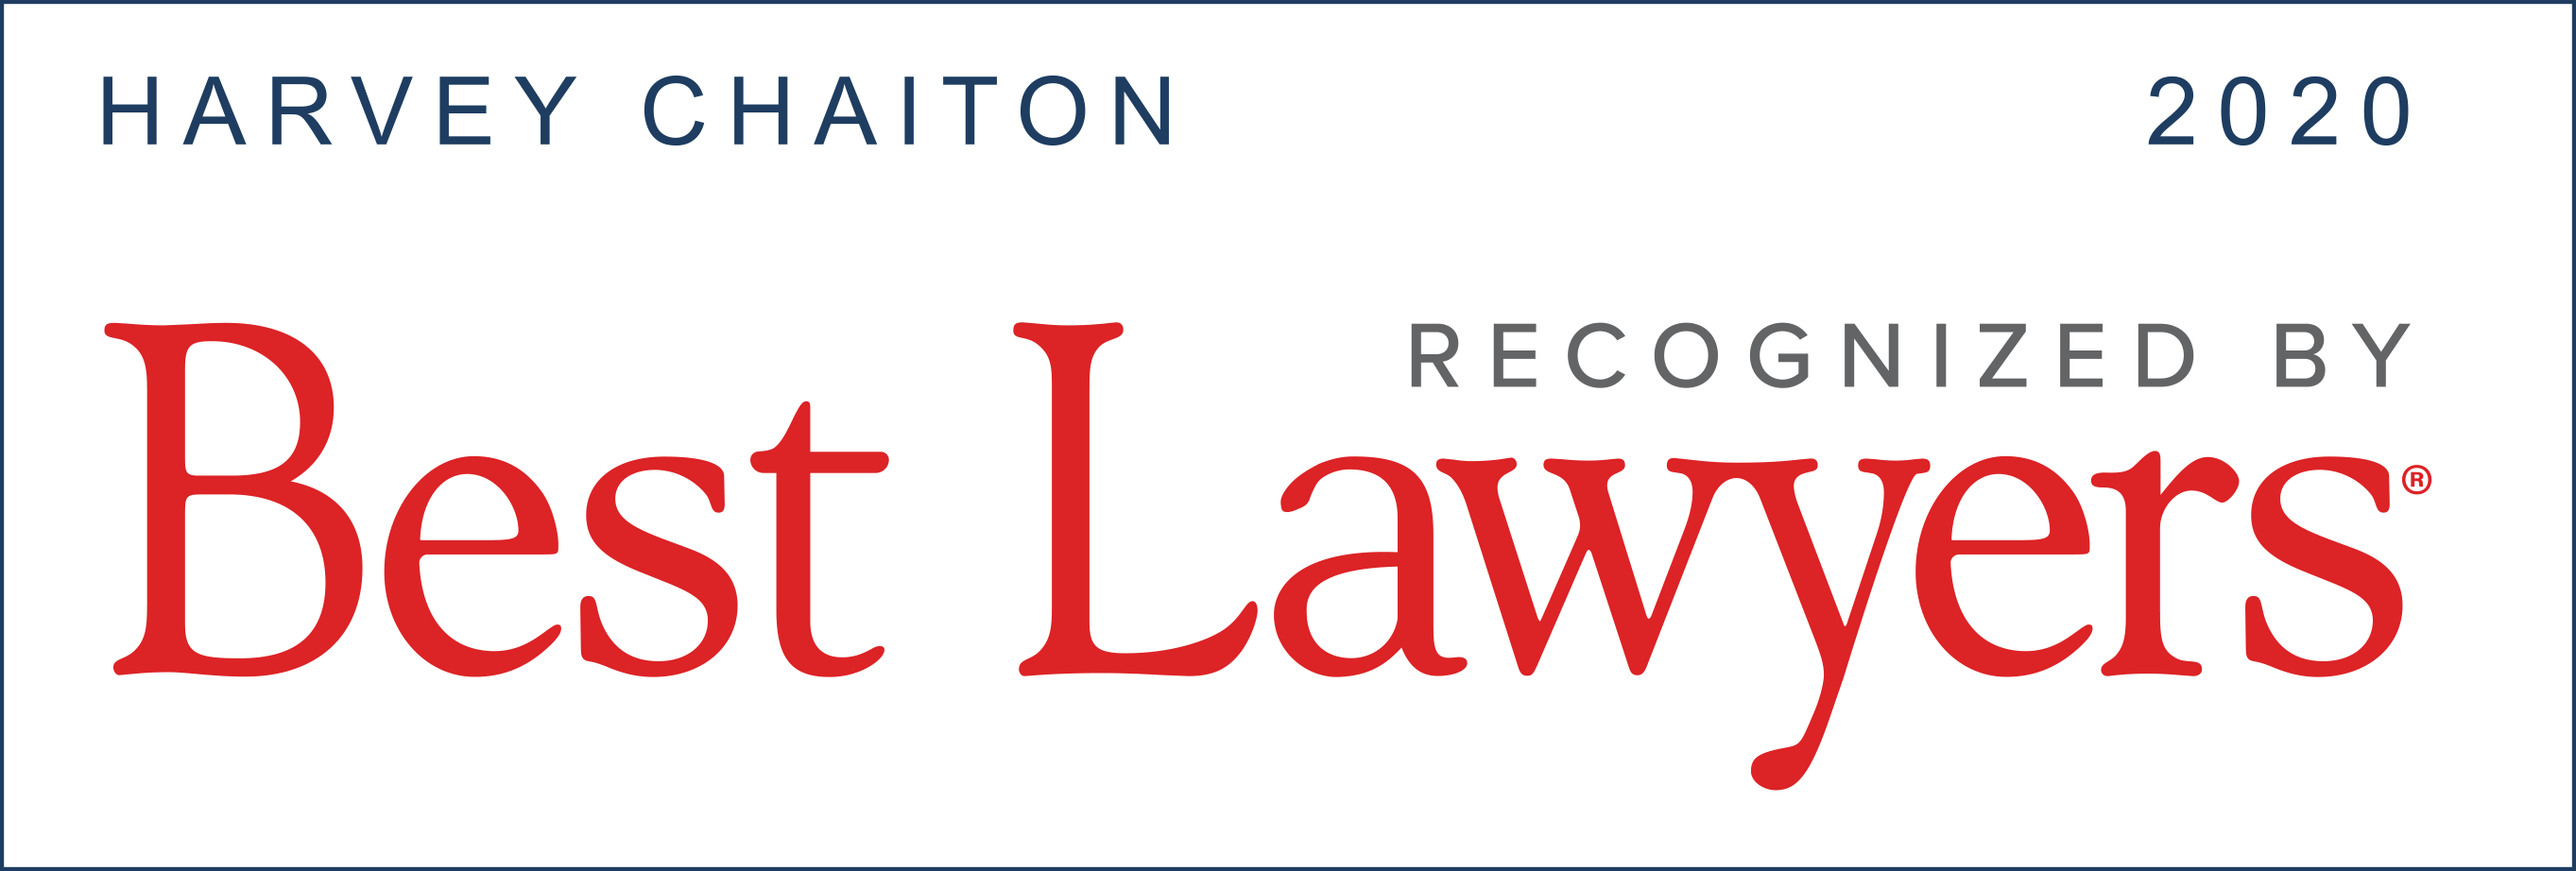 Best Lawyers | Harvey Chaiton | 2020